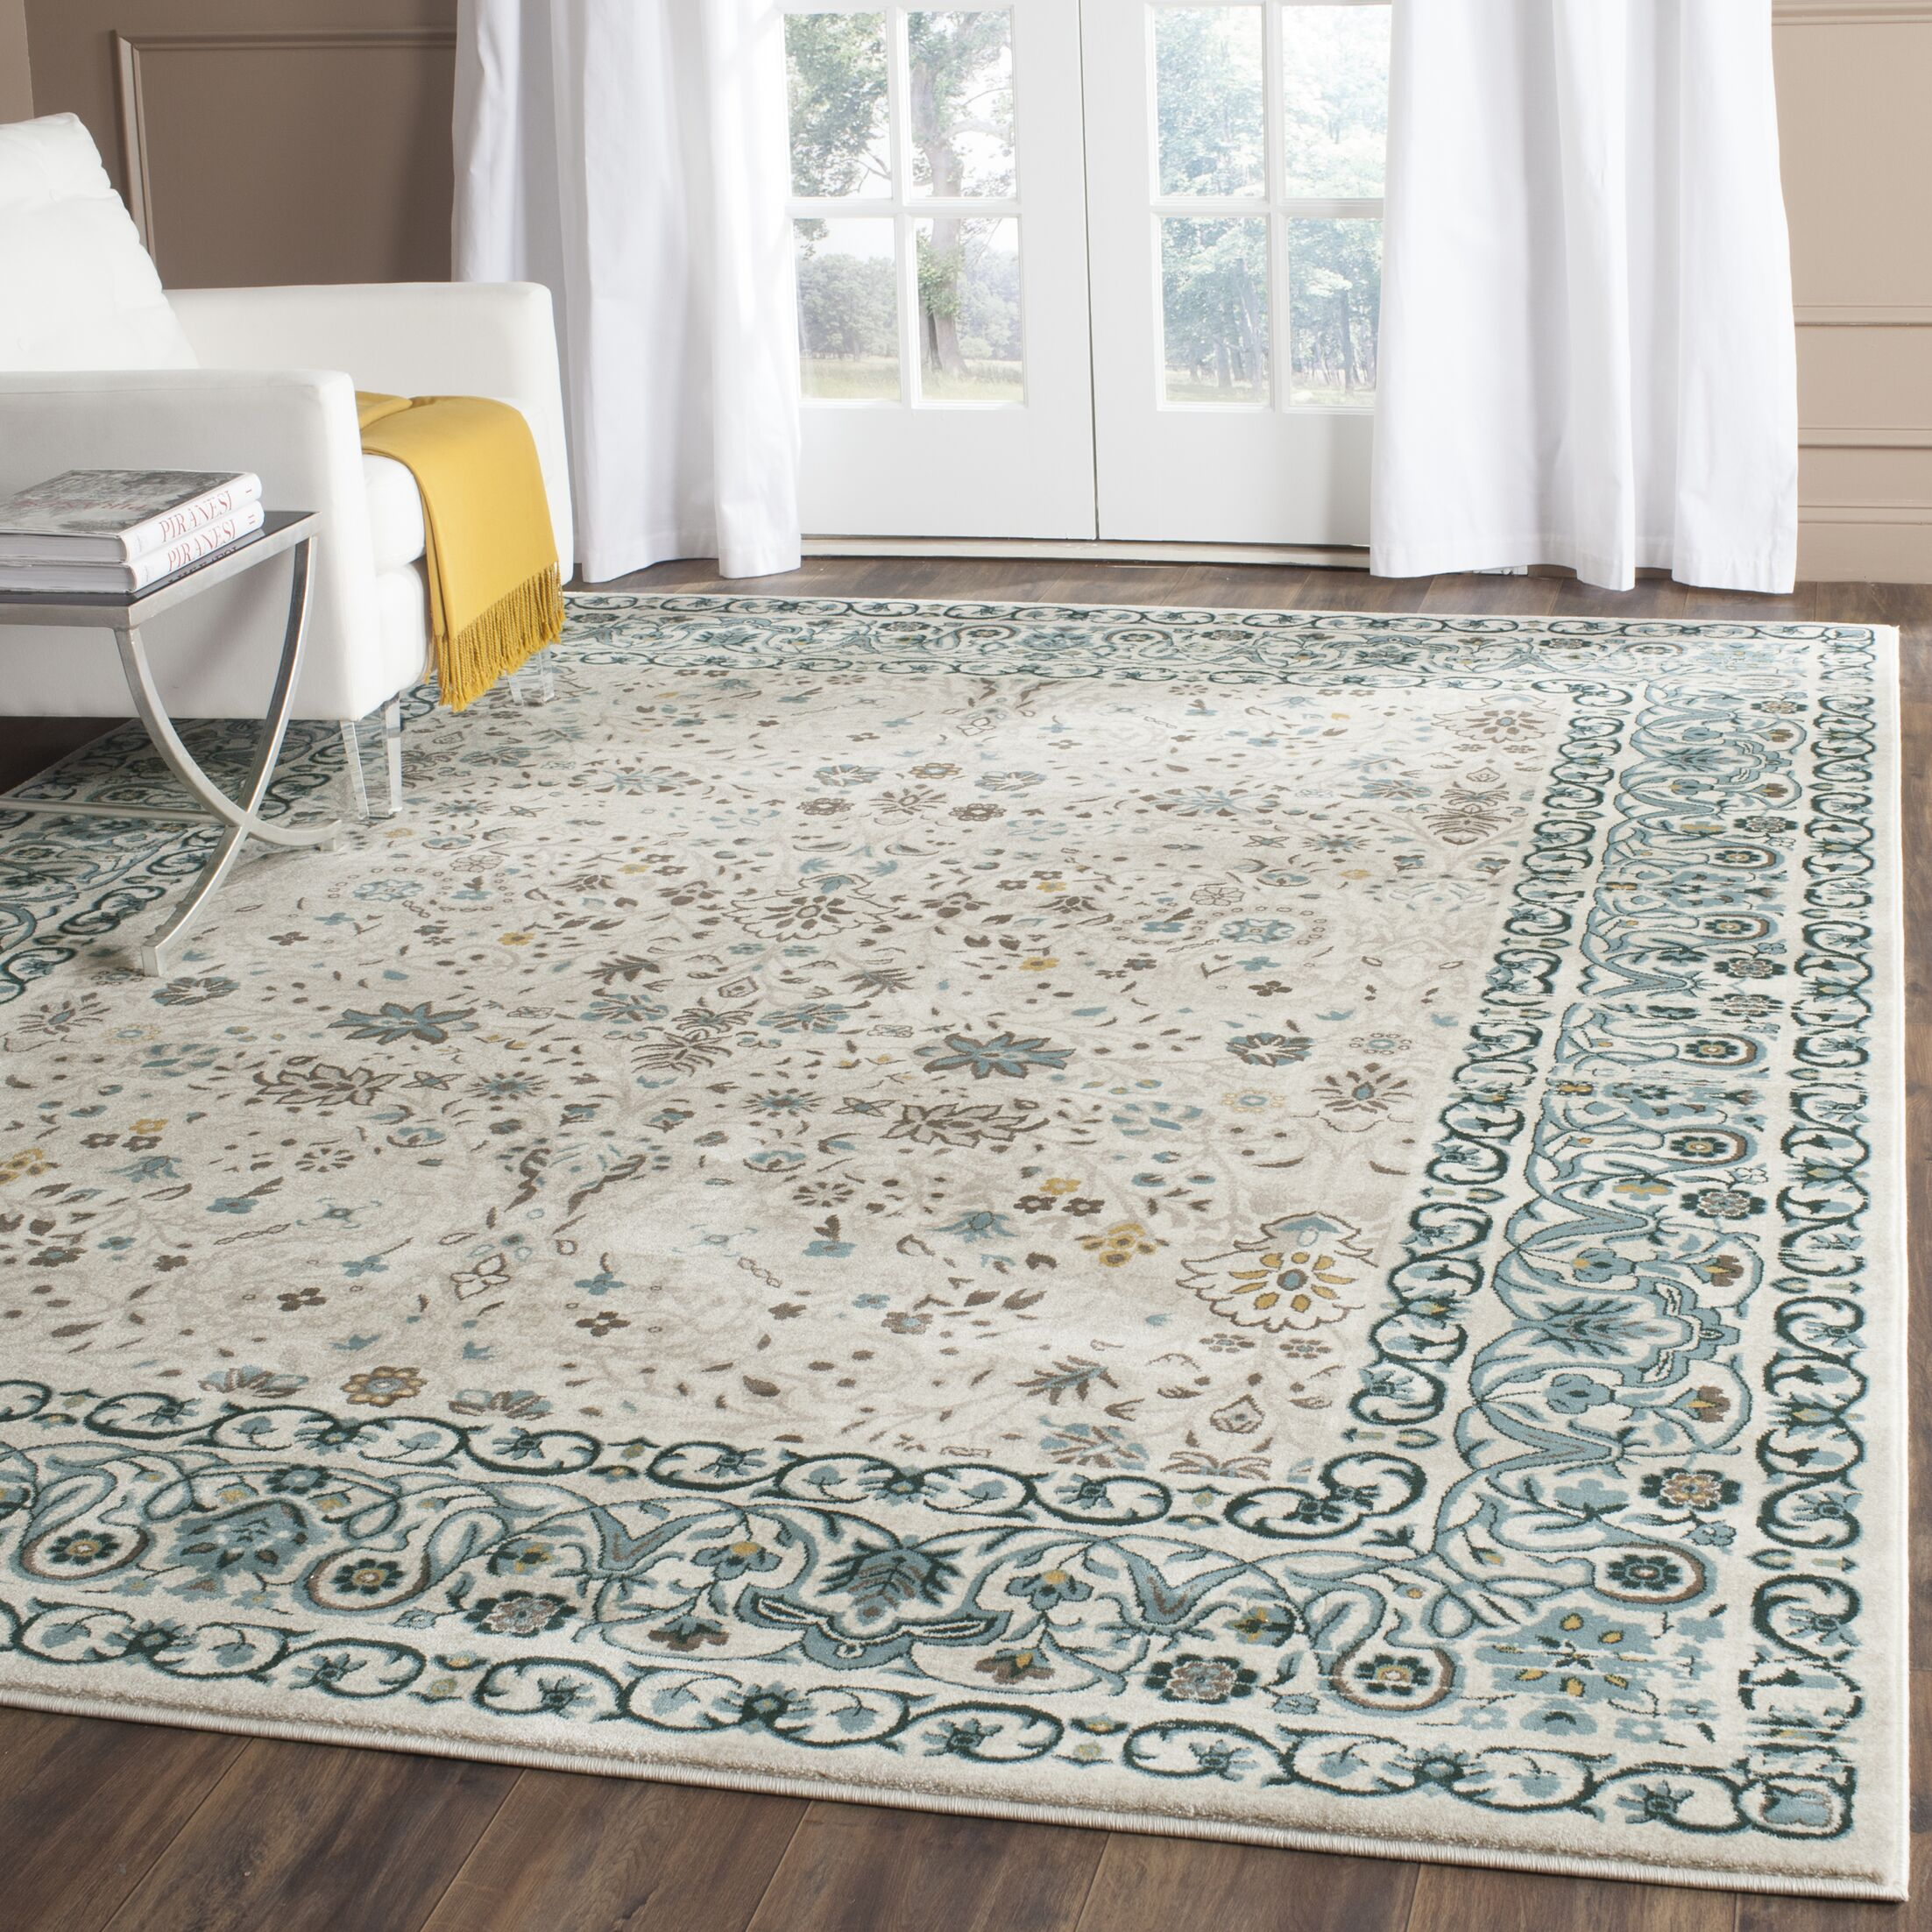 Zennia Blue Area Rug Size: Rectangle 4' x 6'